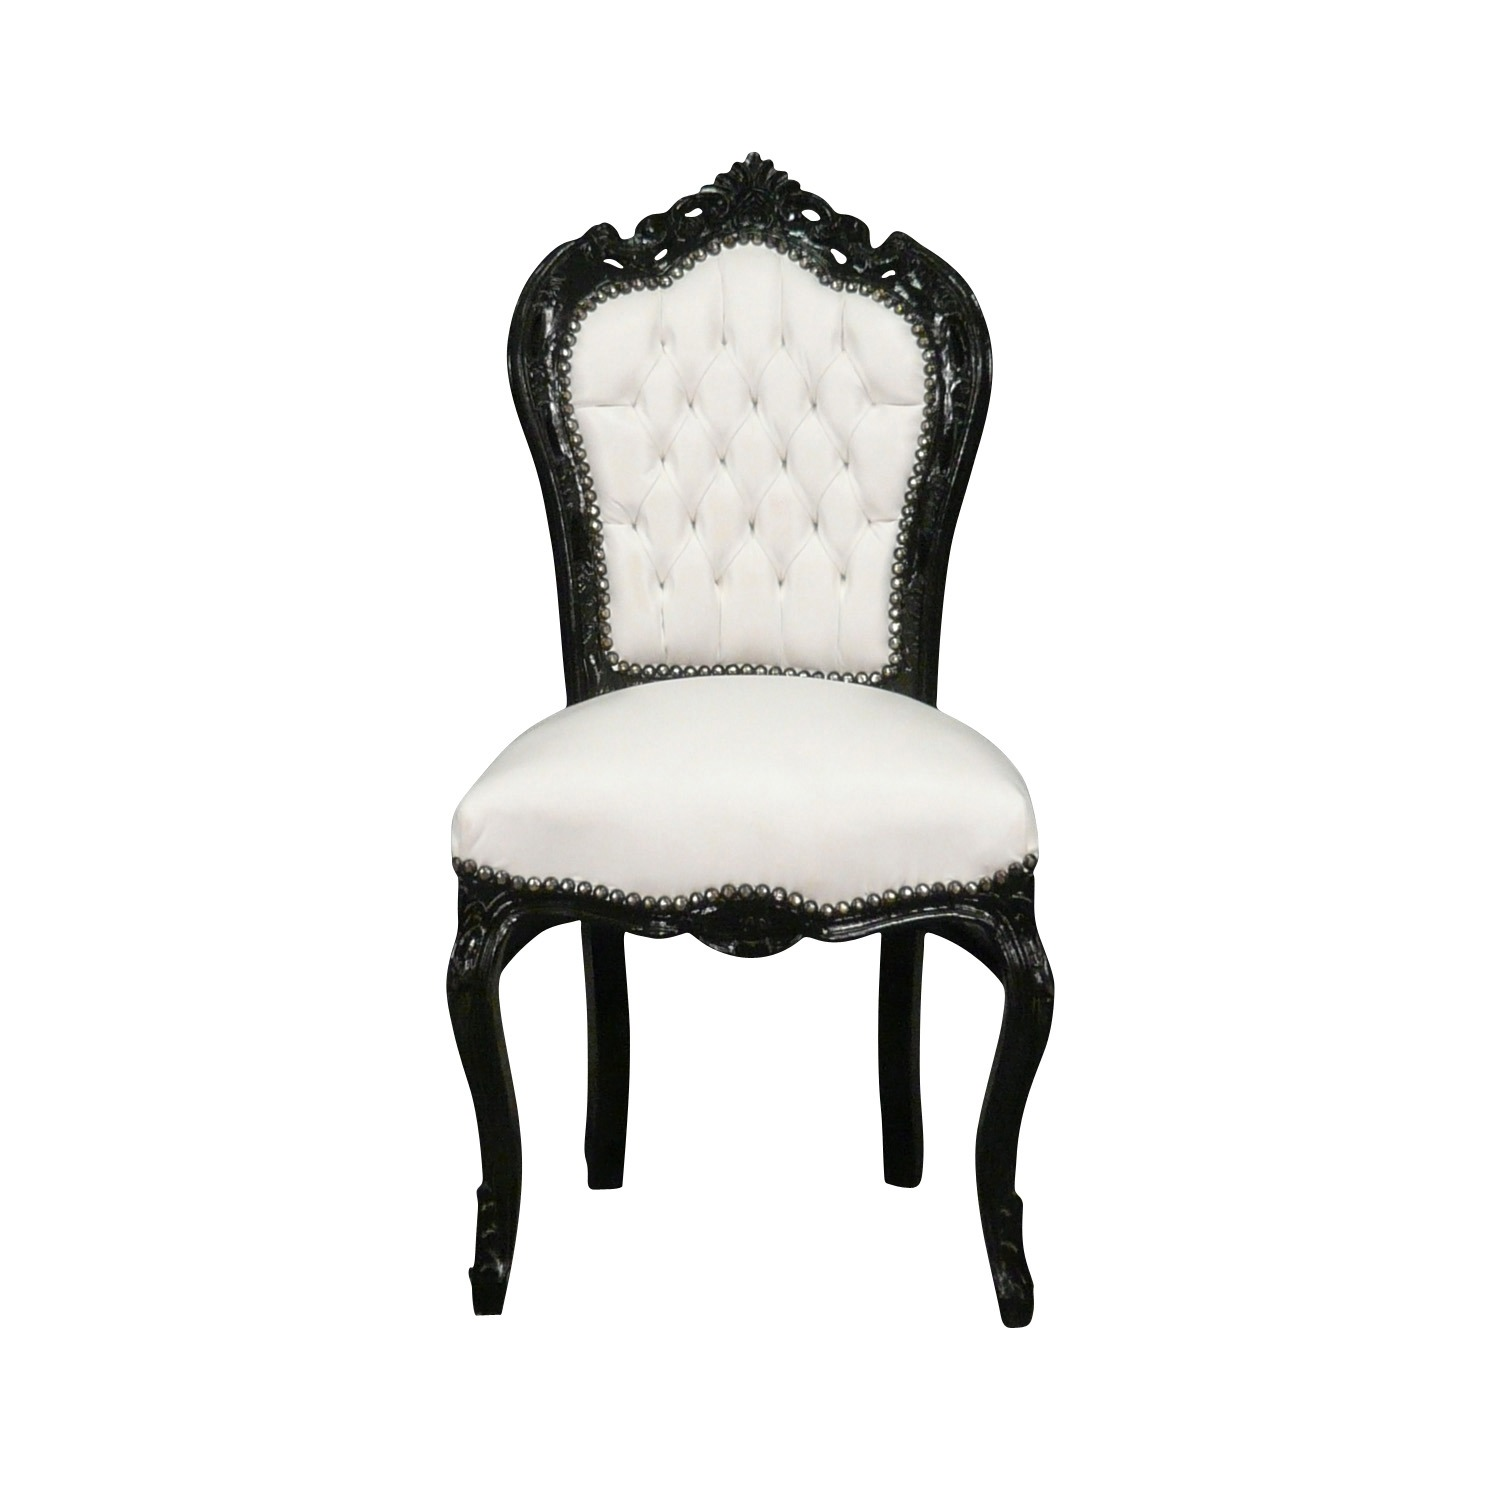 htdeco chaise baroque noire et blanche s rie vesoul. Black Bedroom Furniture Sets. Home Design Ideas